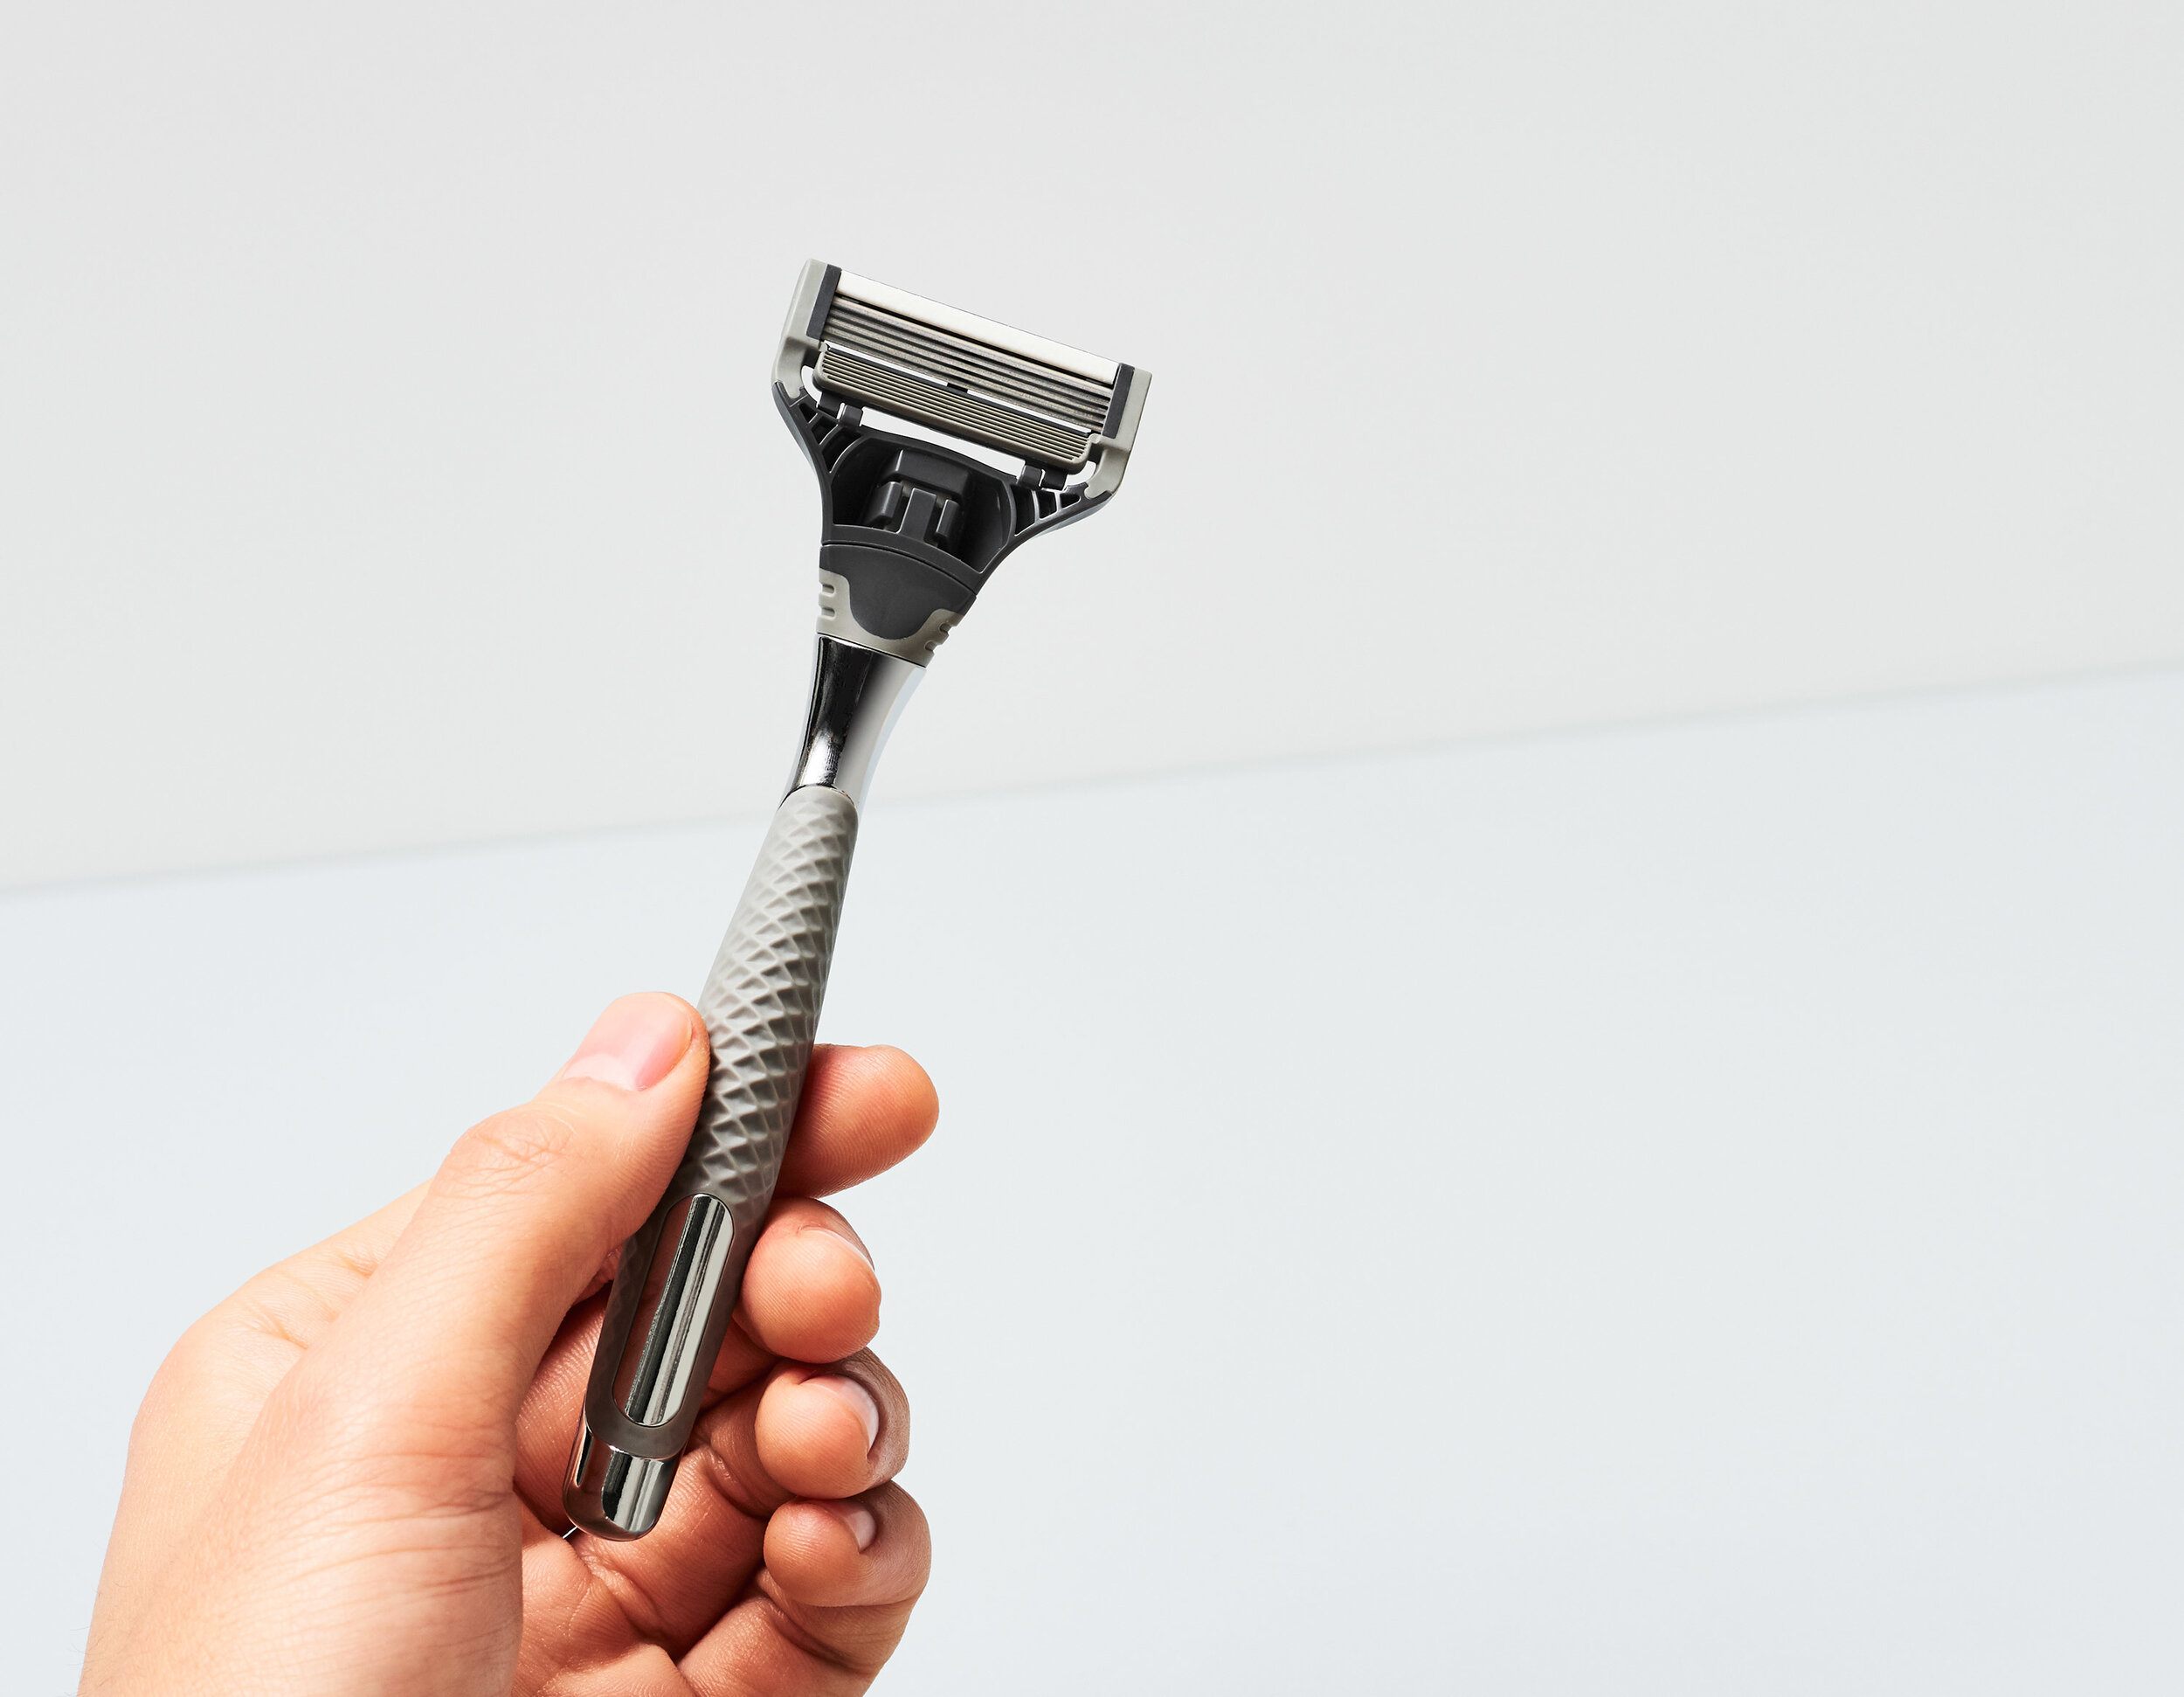 The confluence of function and aesthetics. - The Winston razor handle features a data-driven texture profile that both embodies and further defines Harry's brand position as an innovator in the men's shaving market.Harry's, Inc.Services Provided:Product Design & DevelopmentSoftware Development